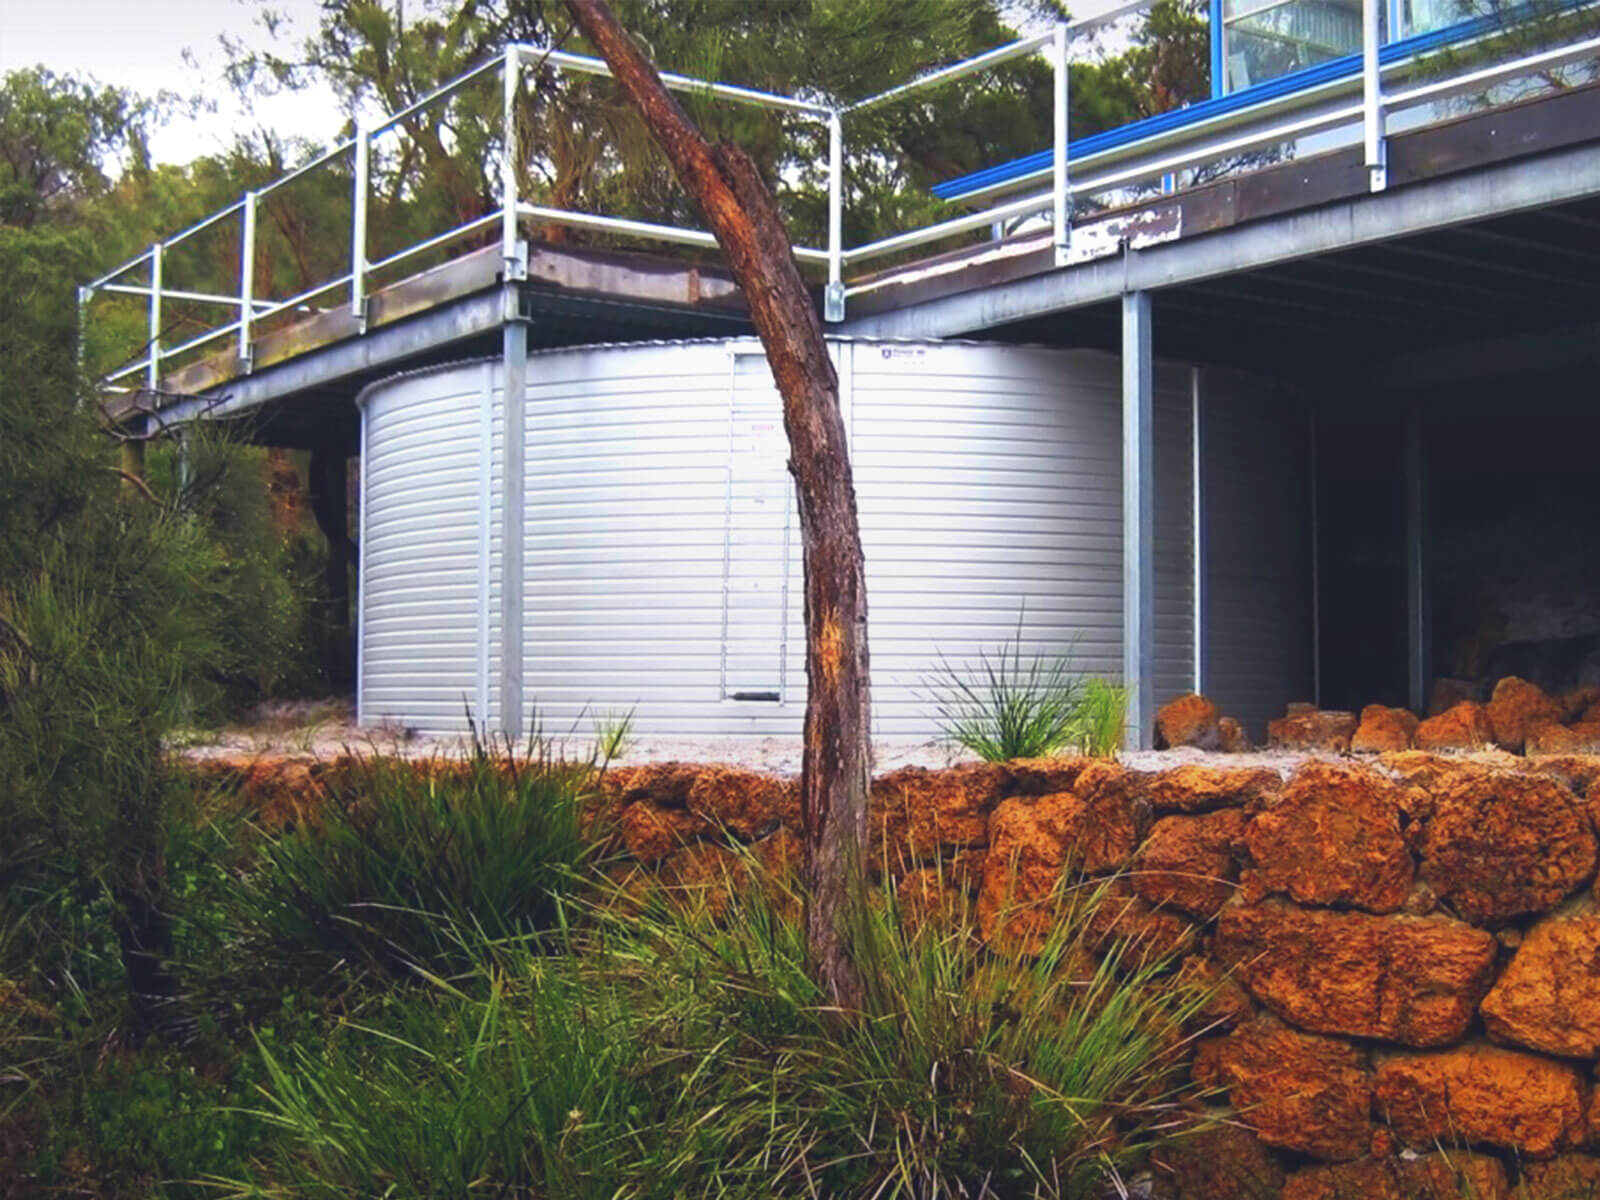 Huckleberry Tanks And Sheds - Roof Plumbing